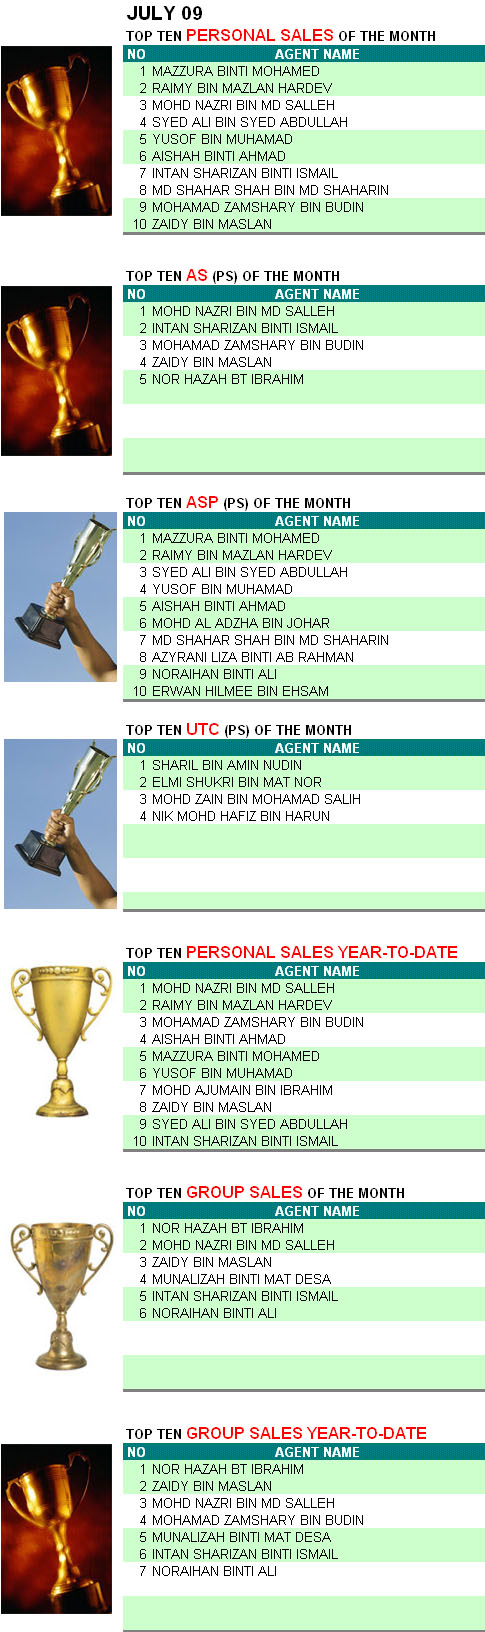 top-producer-july093